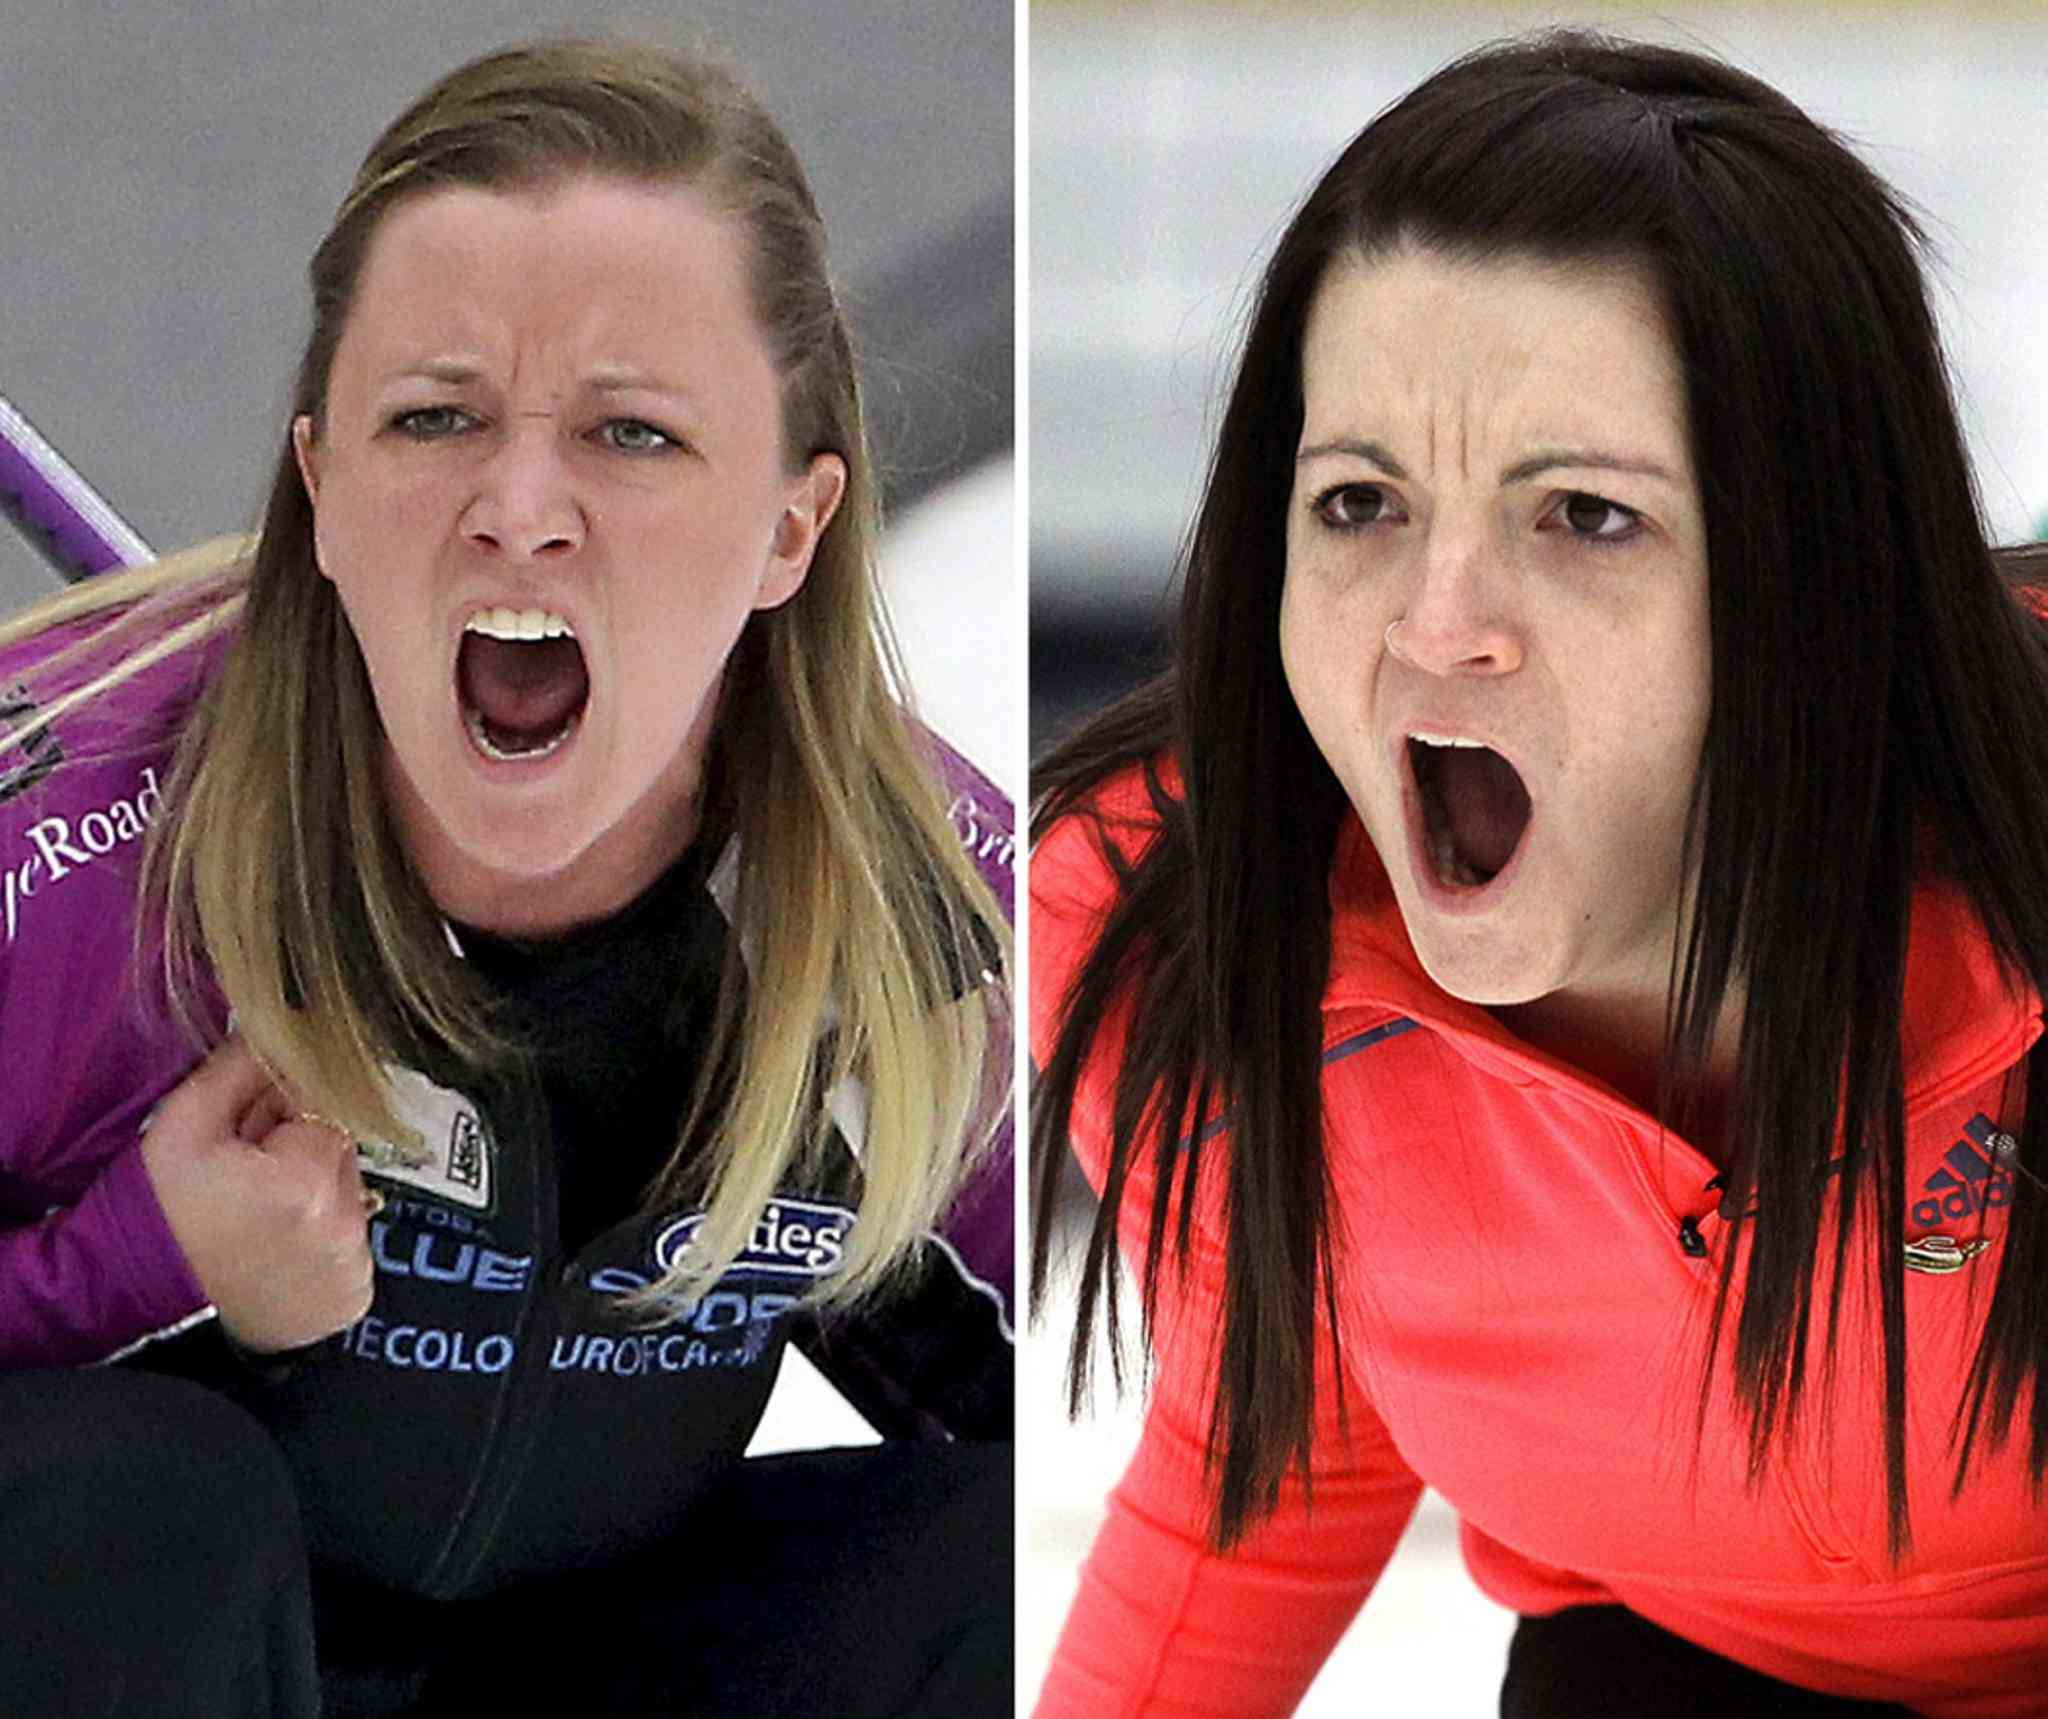 Chelsea Carey and Kerri Einarson instruct their sweepers as they compete during the final of the Scotties Provincial Curling Championship at the Tundra Oil & Gas Place in Virden, Manitoba, Sunday, January 12, 2014. (TREVOR HAGAN/WINNIPEG FREE PRESS)